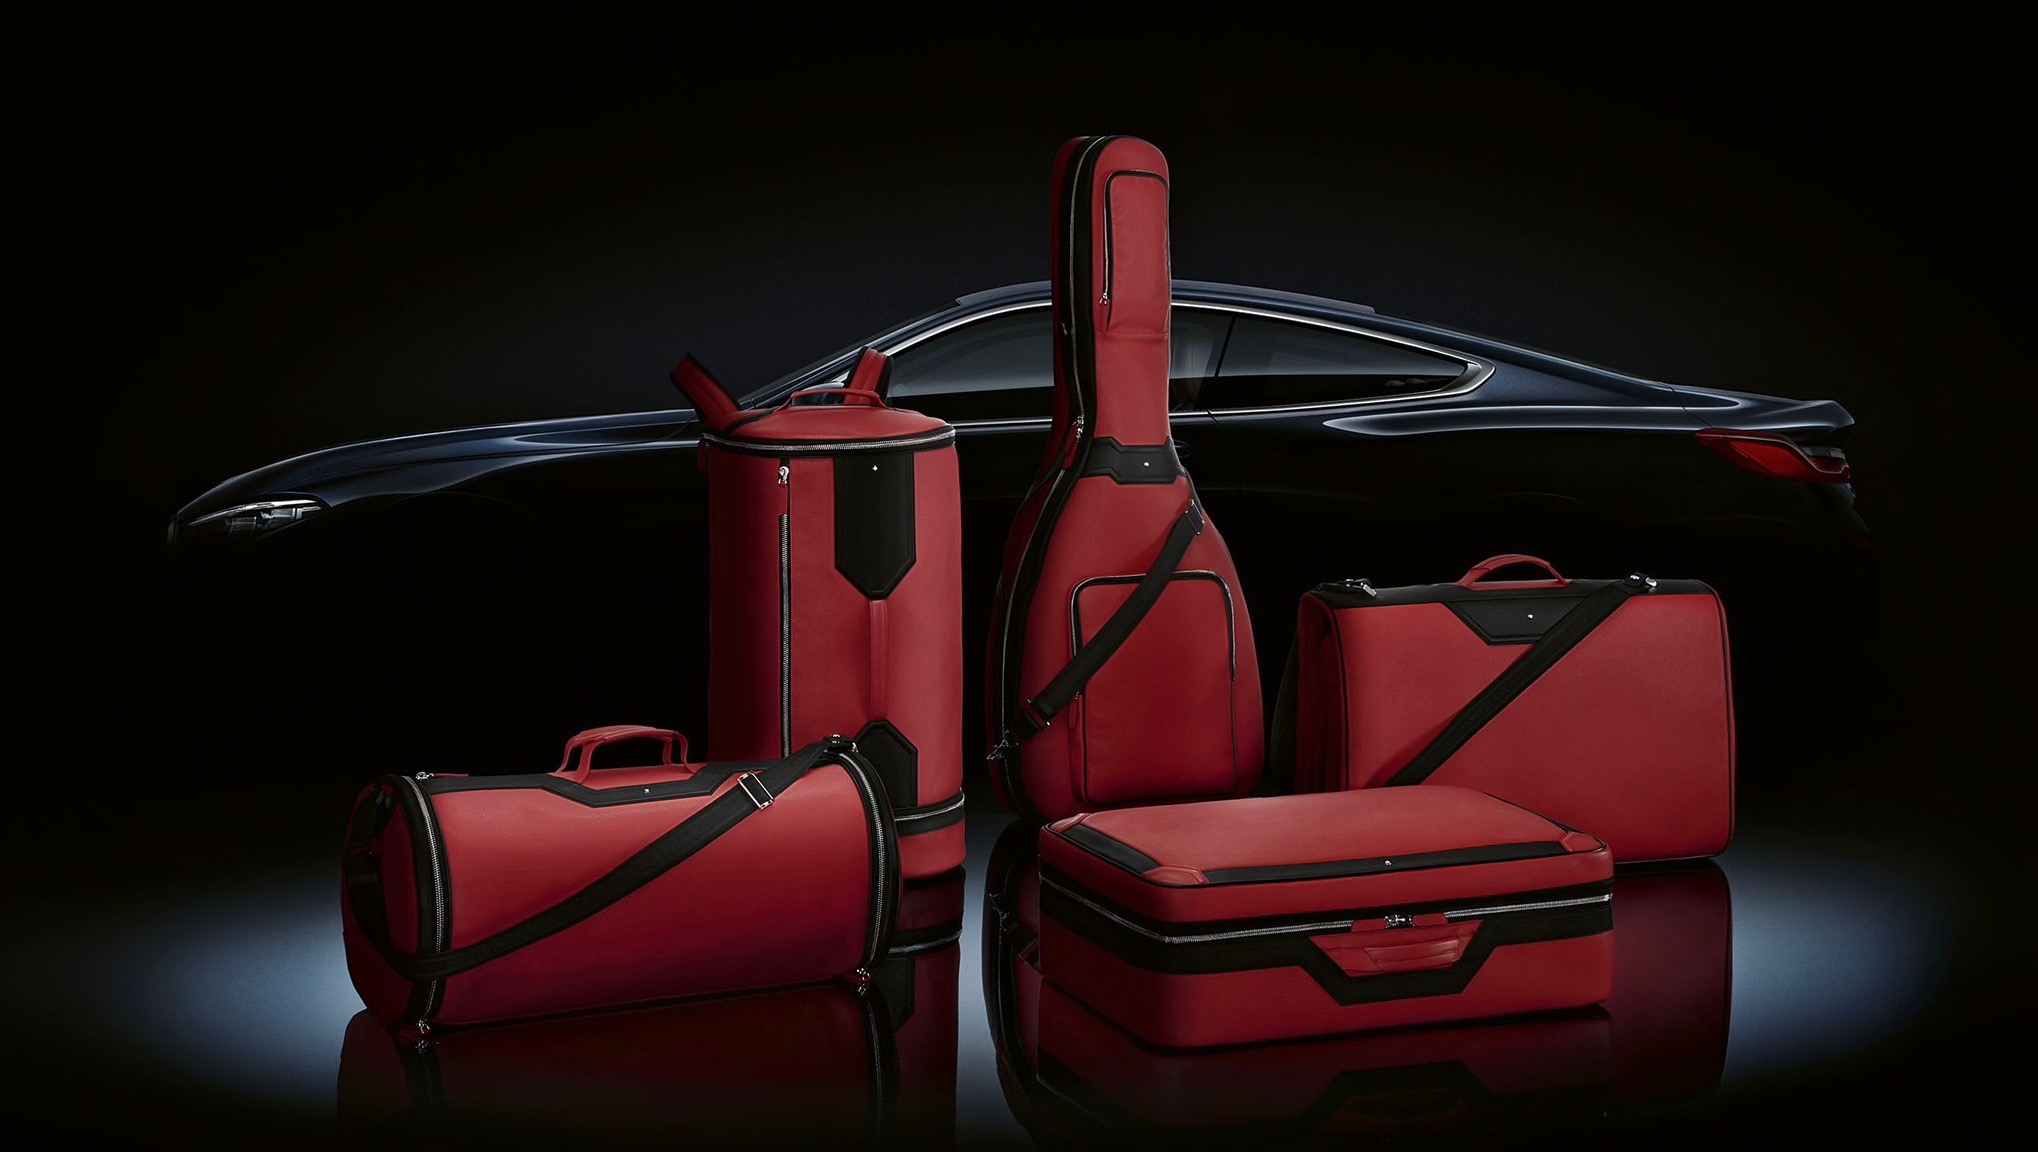 Montblanc's exclusive S$23,000 luggage set fits perfectly into BMW's 8 Series coupé